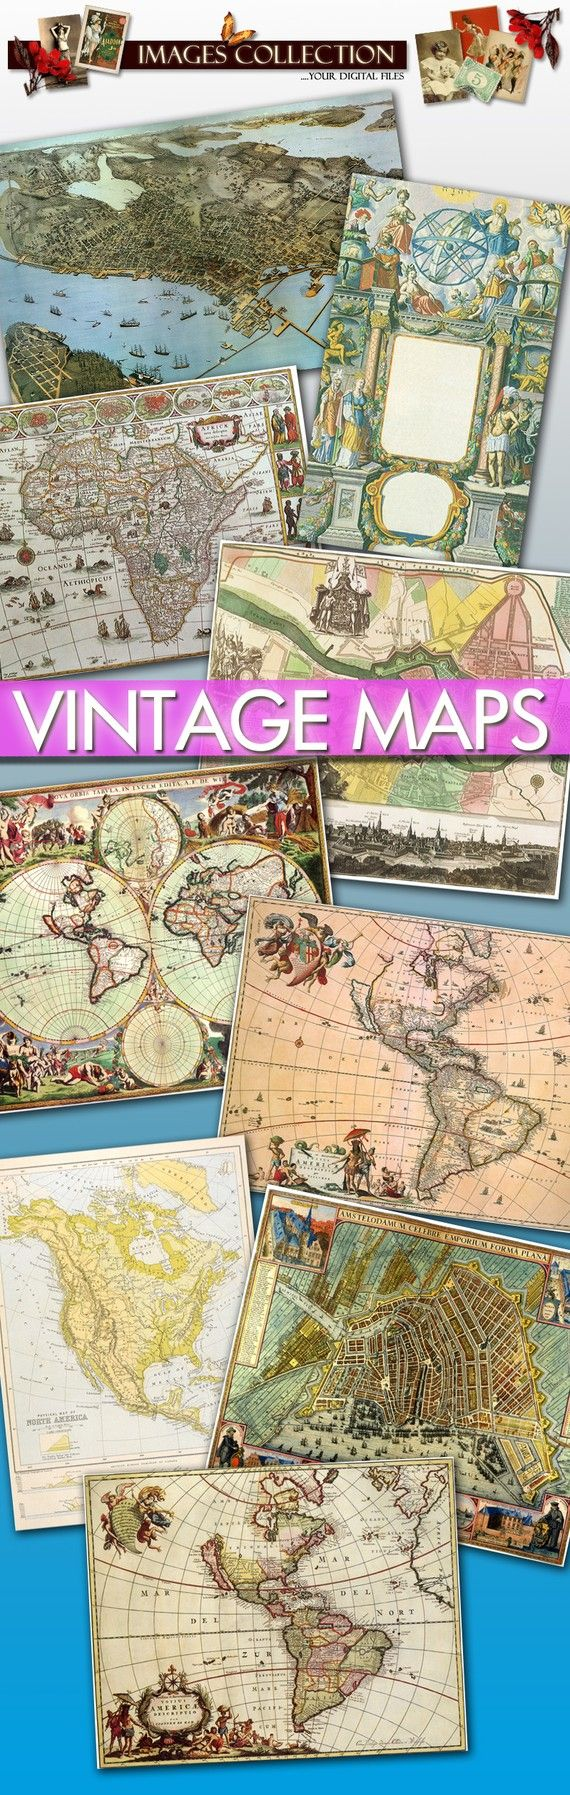 digital collection antique maps jpeg files 300 dpi digital collection 80 antique maps large images printable for your scrap cards labels jewellery decoupage art old ancient world via etsy wall diy gumiabroncs